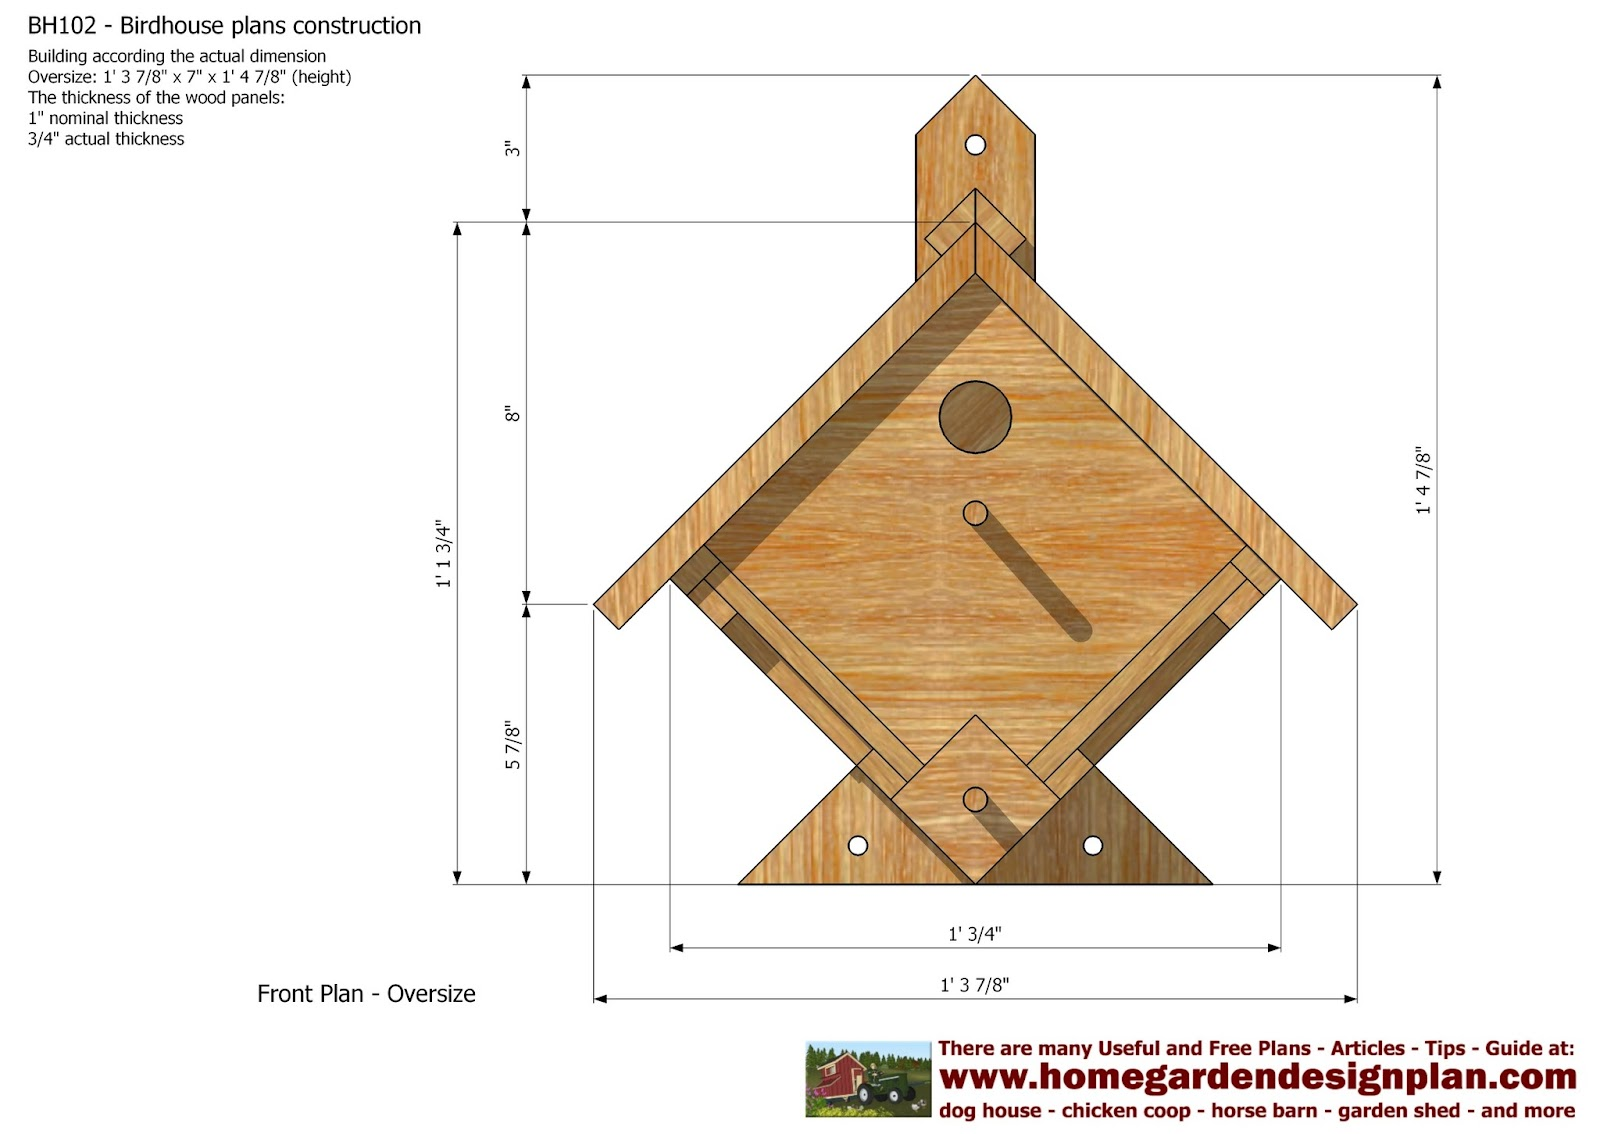 Mina bh102 bird house plans construction bird house for Plans to build a house